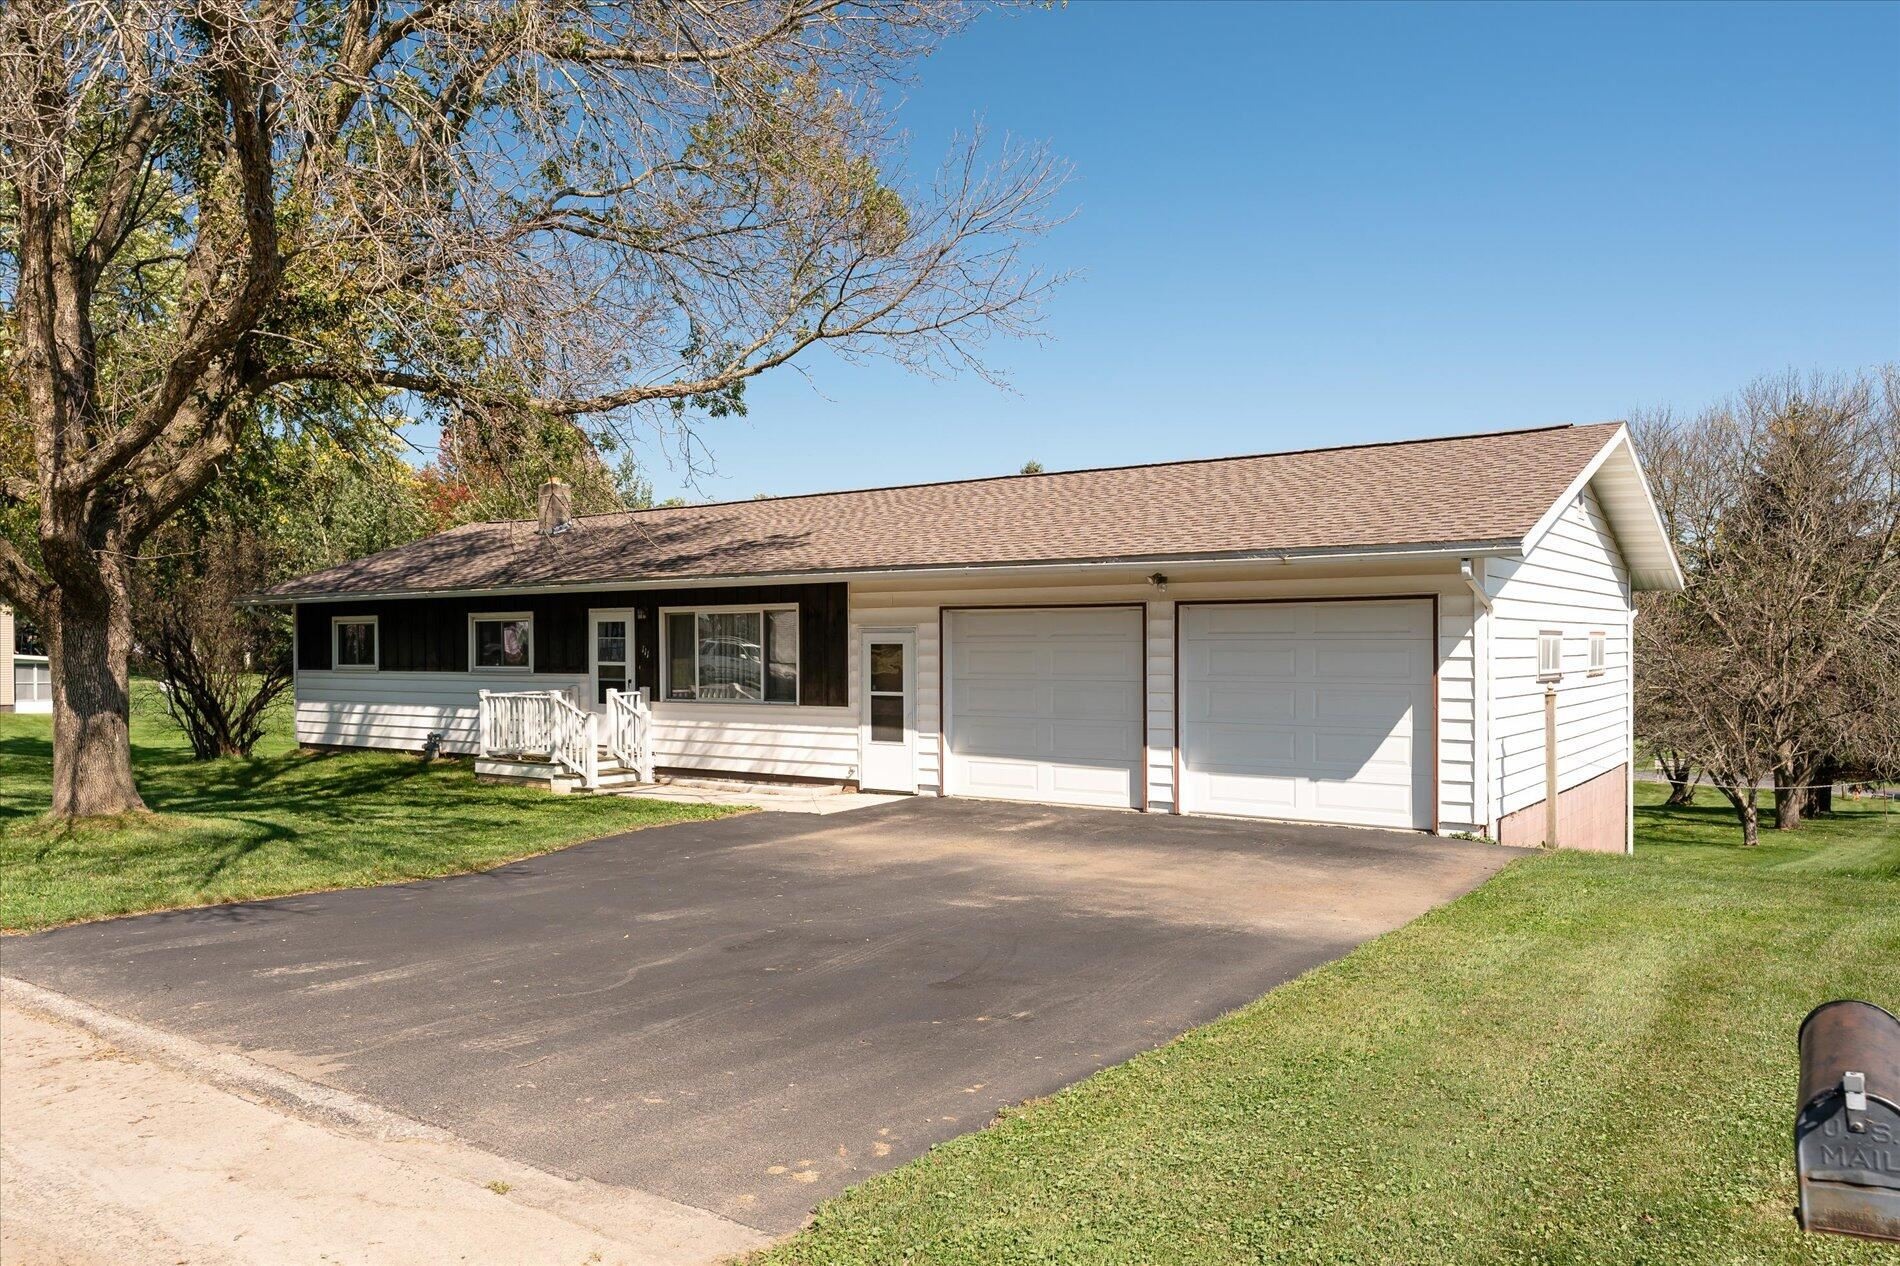 111 Grove St, Westby, WI 54667 - MLS#: 1764088